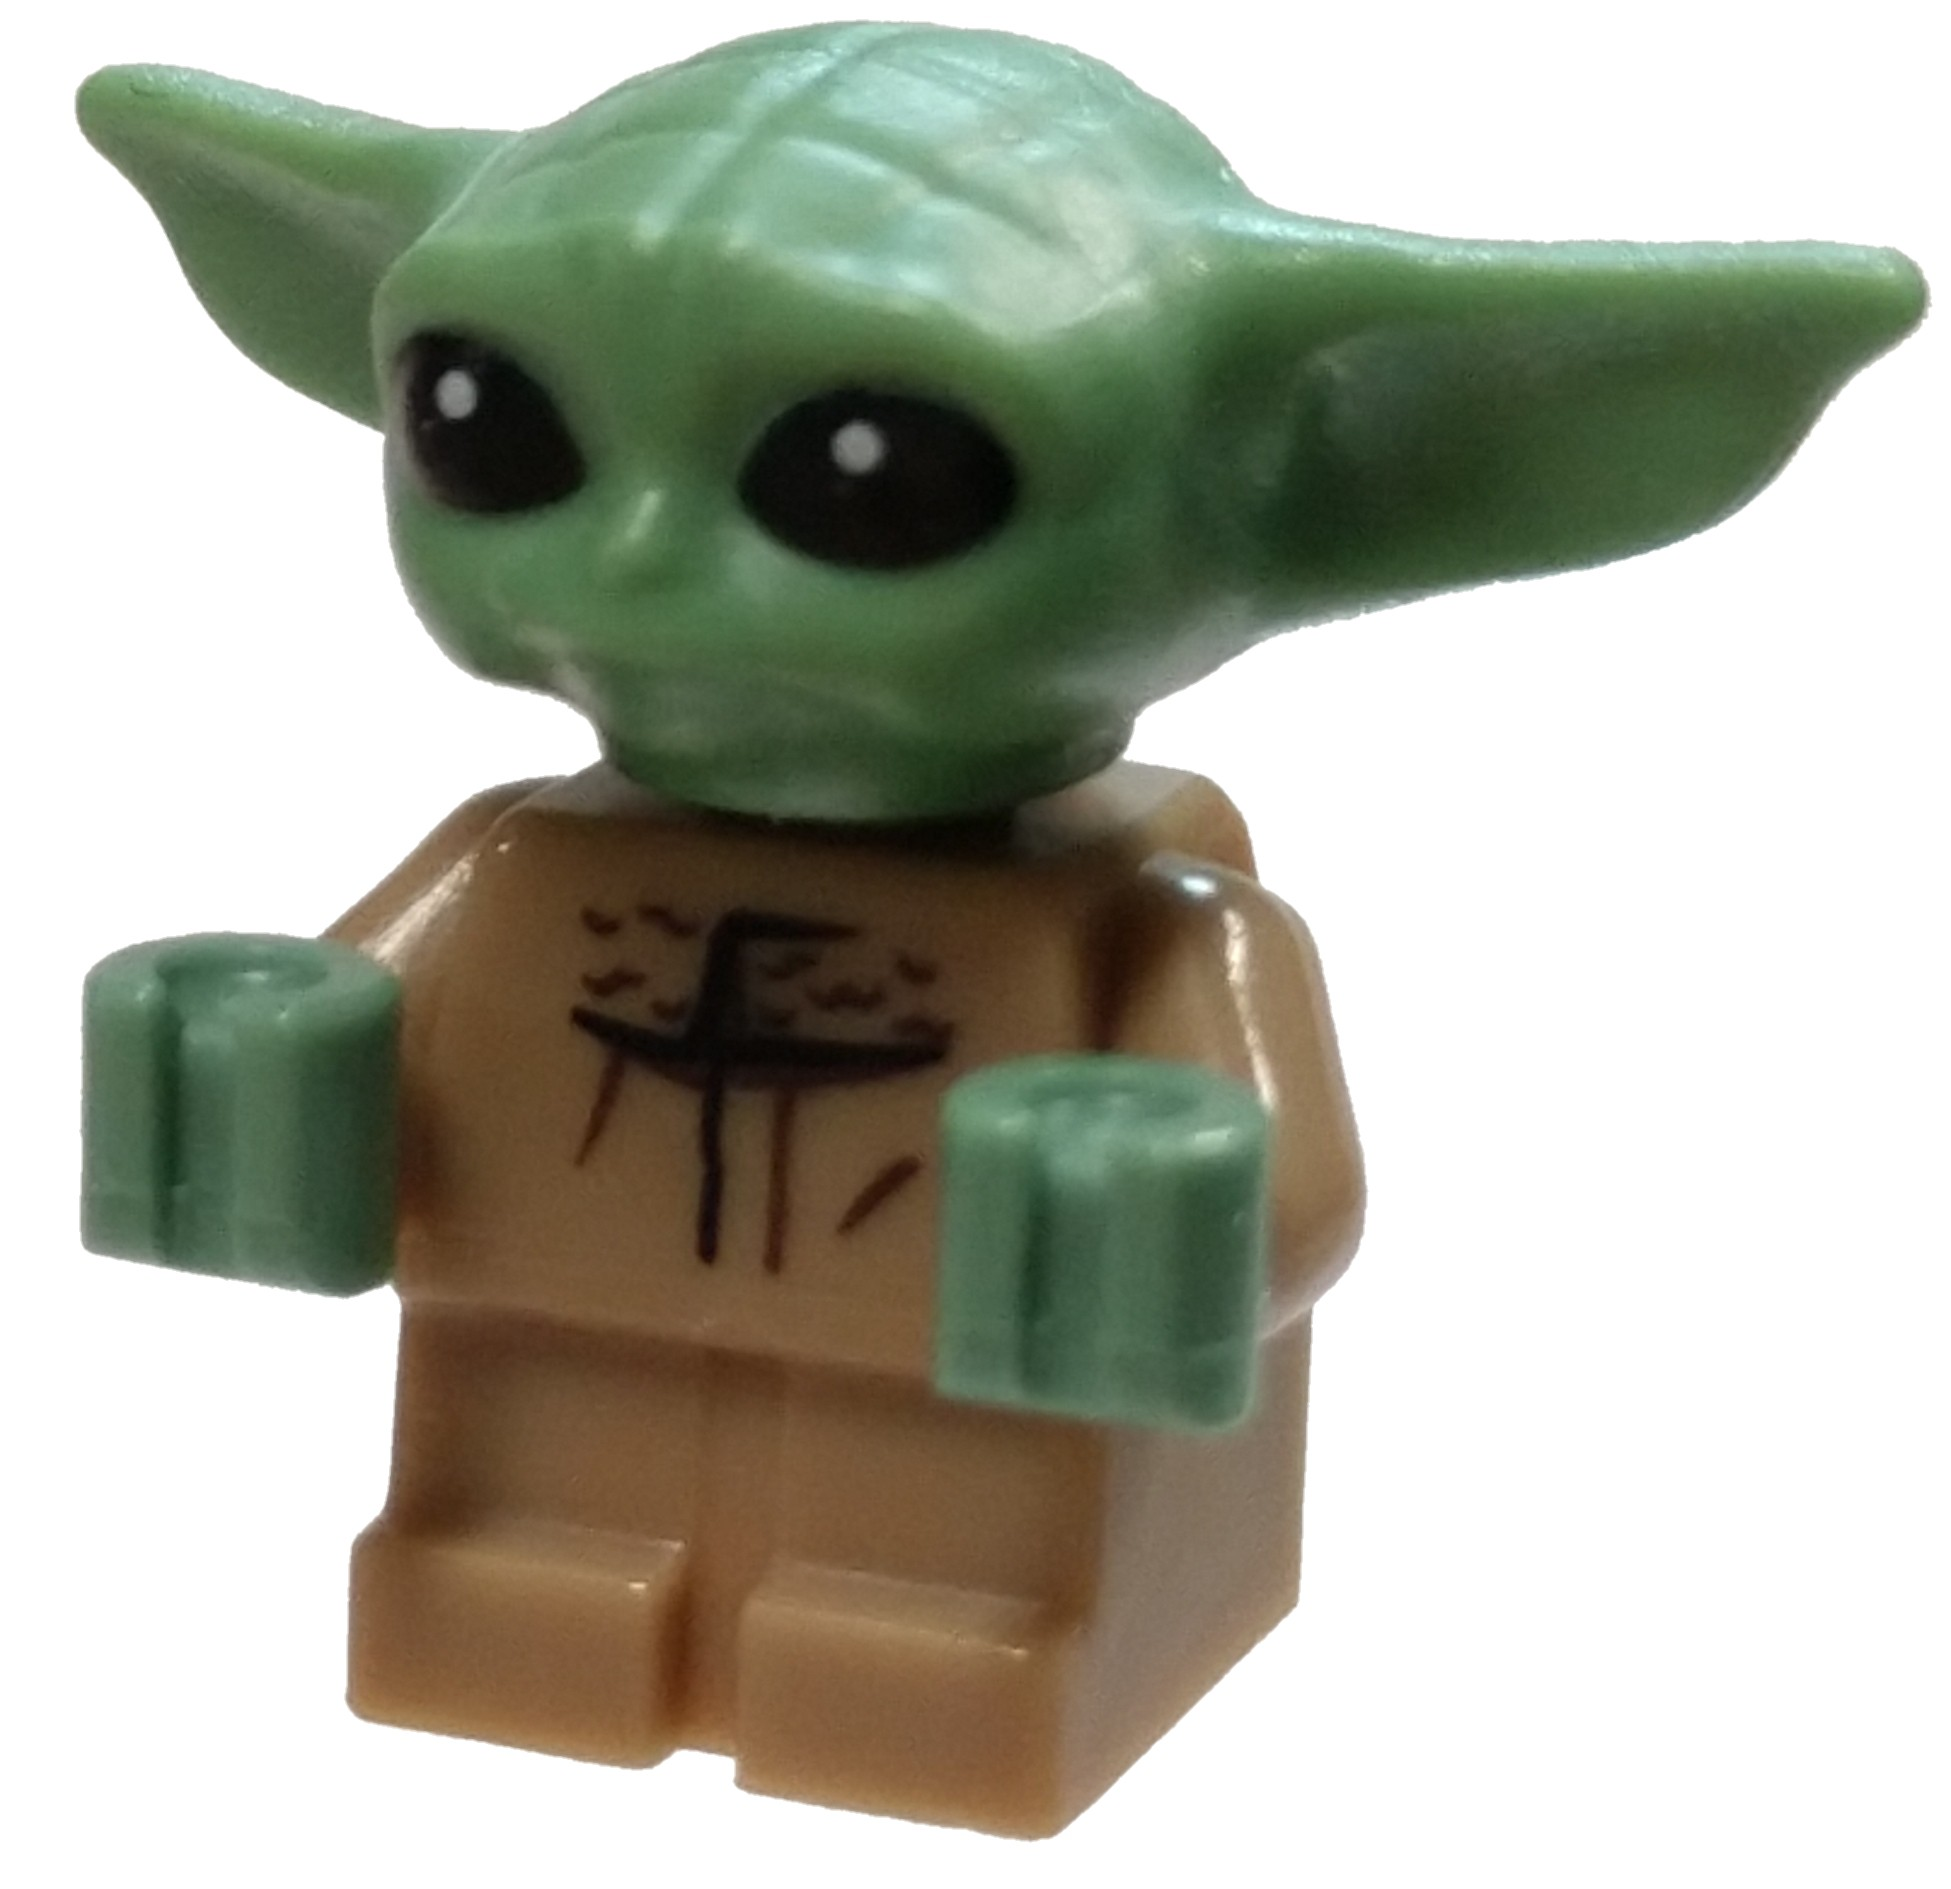 1Pcs Baby Yoda Star Wars Lego Minifigures Building Blocks Toys